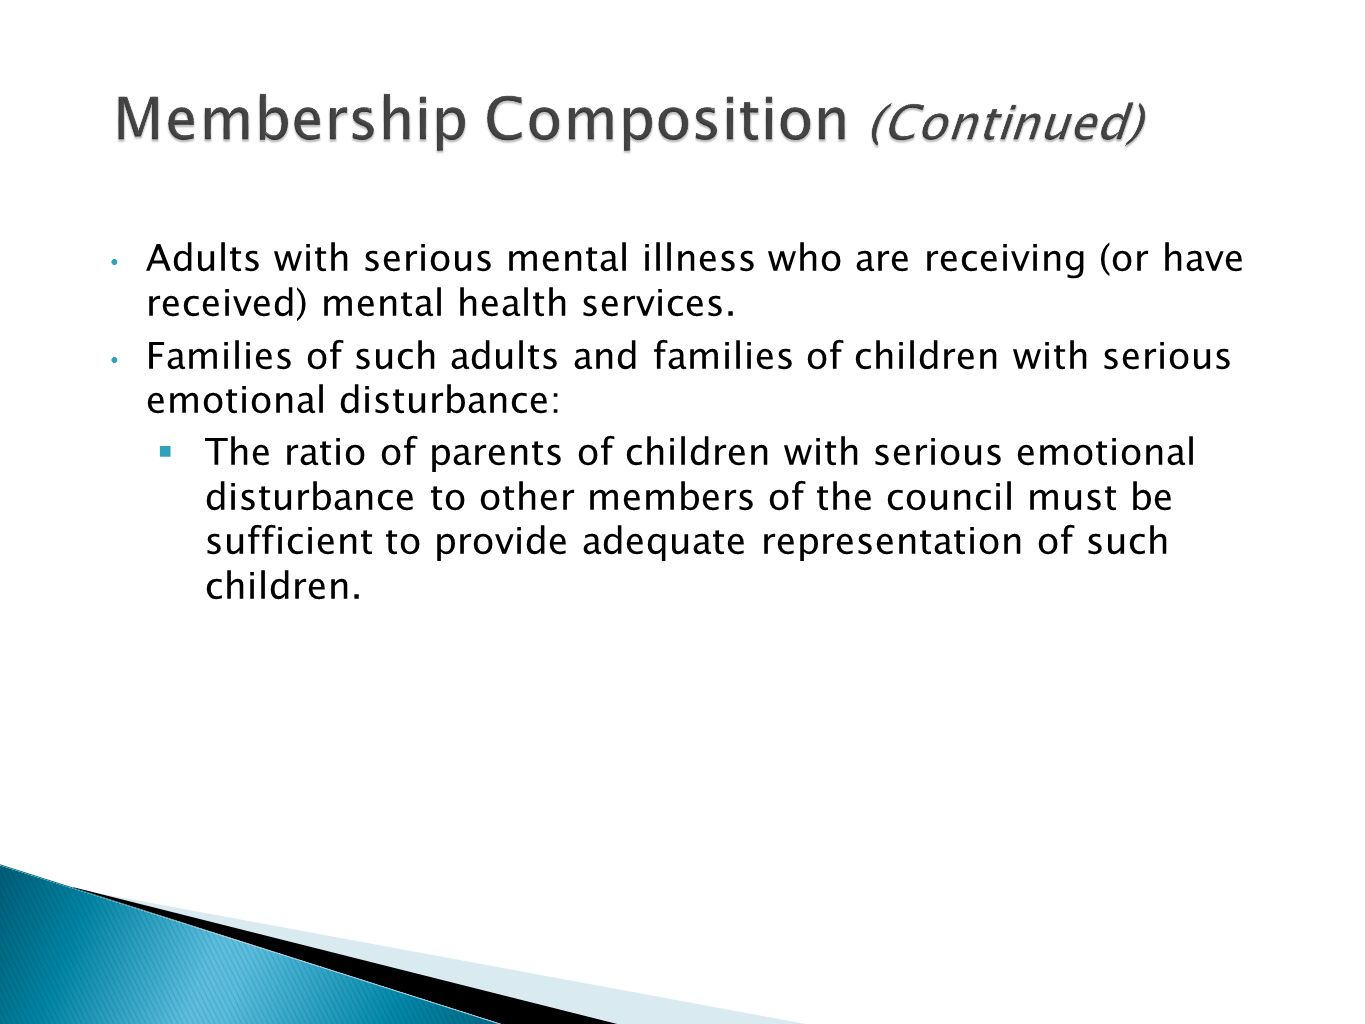 Most importantly, the law states that not less than 50% of the members of the councils are individuals who are NOT State employees or providers of mental health services.